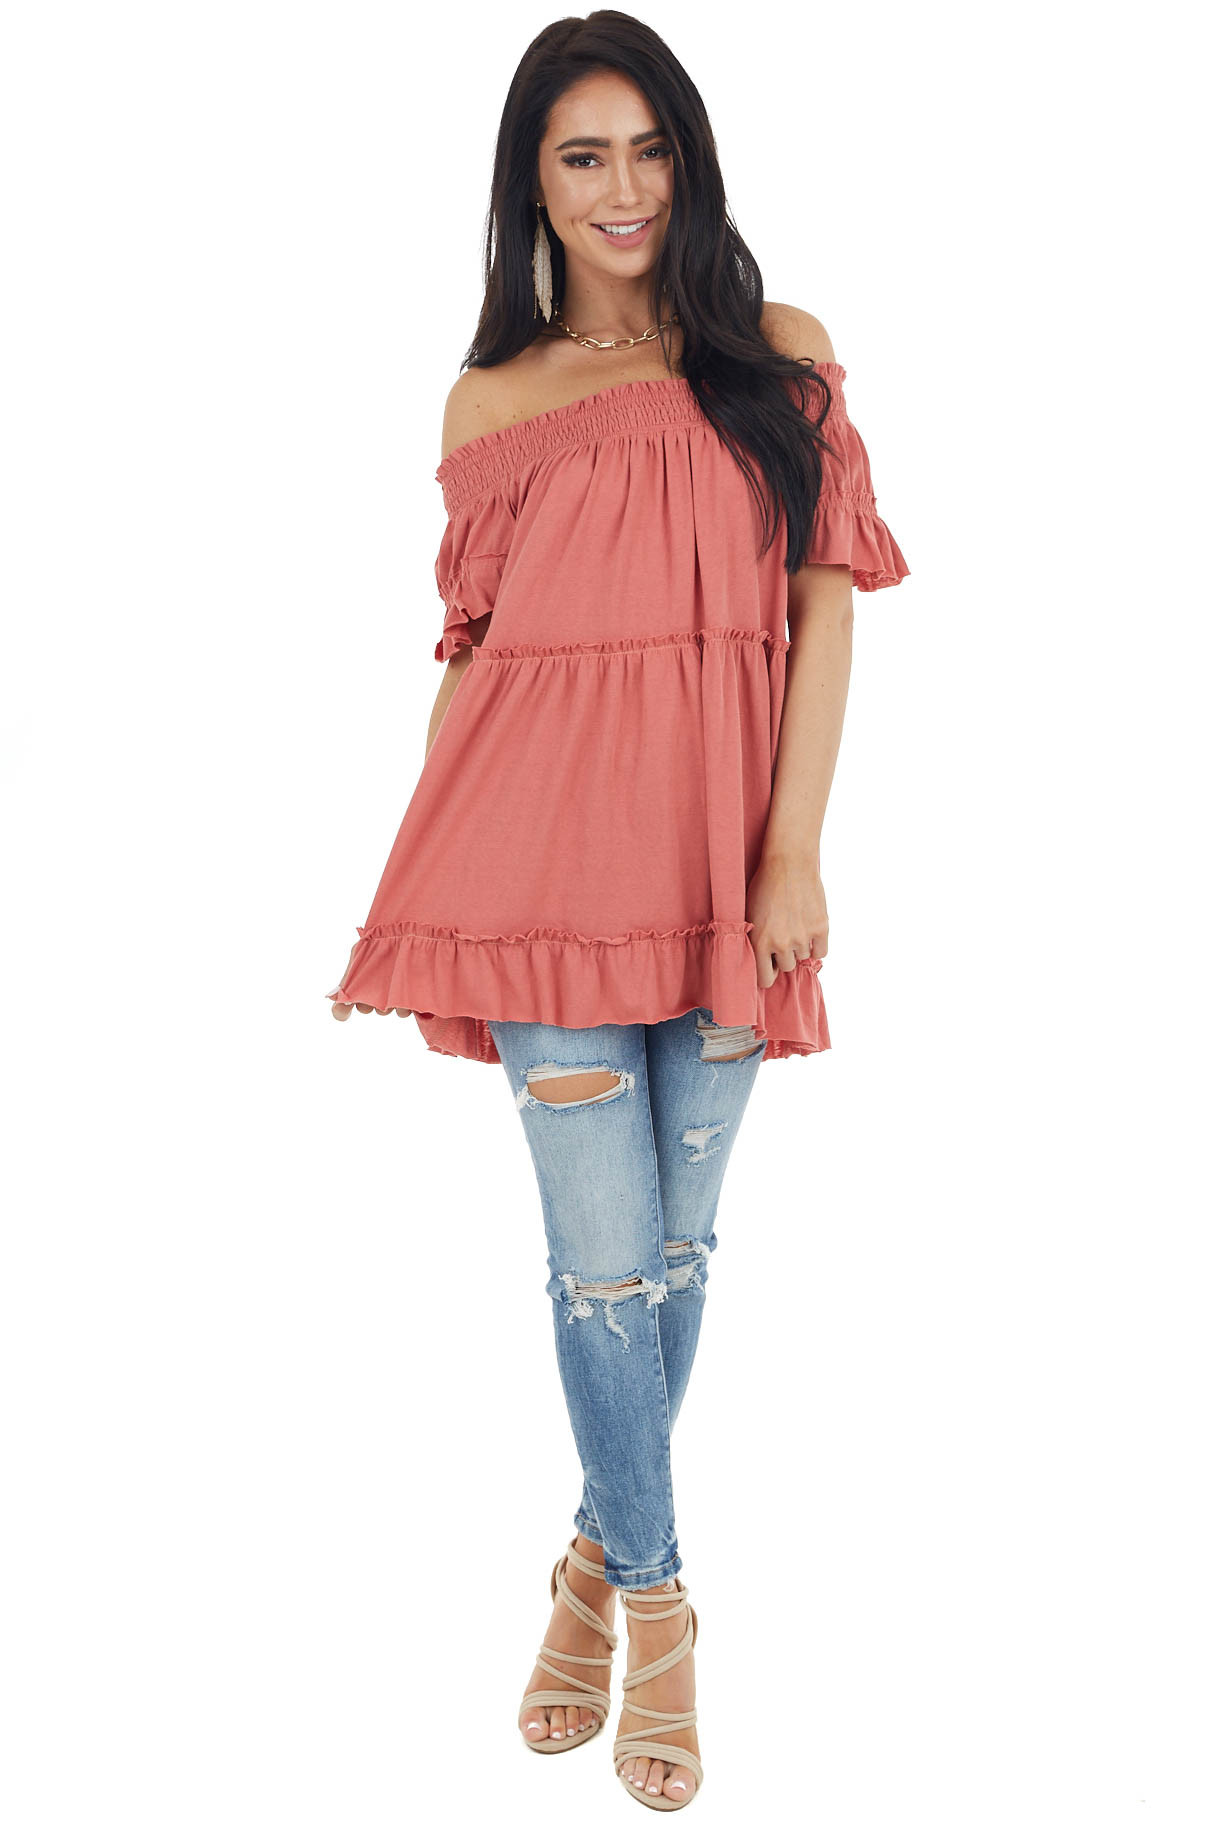 Coral Off Shoulder Tiered Tunic Top with Short Sleeves